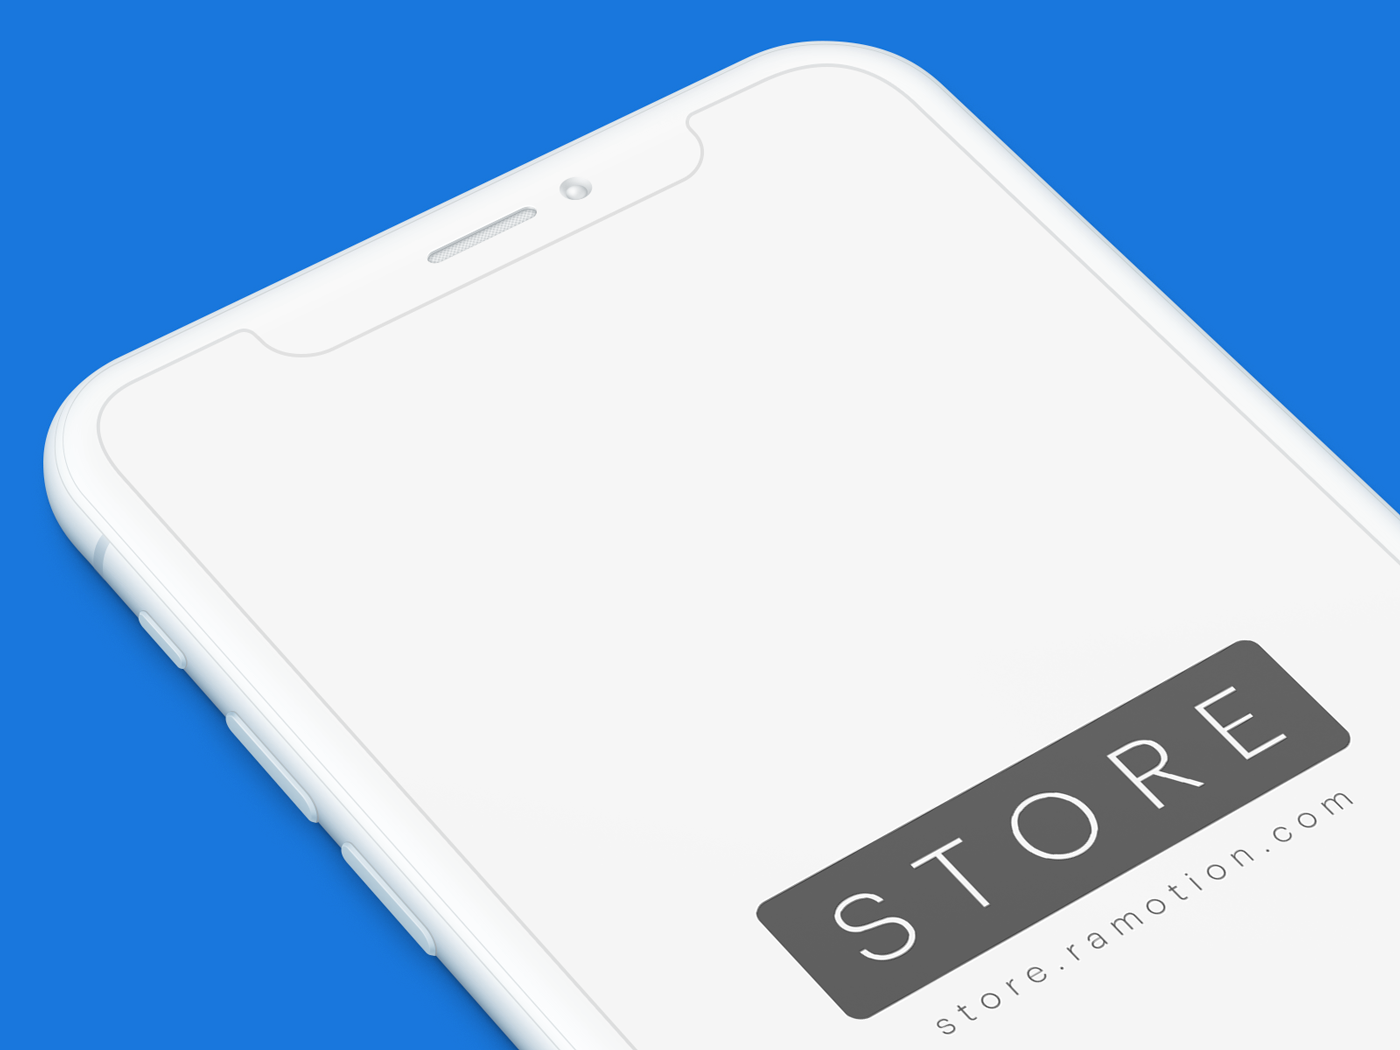 Iphone x clay perspective mockup psd sketch